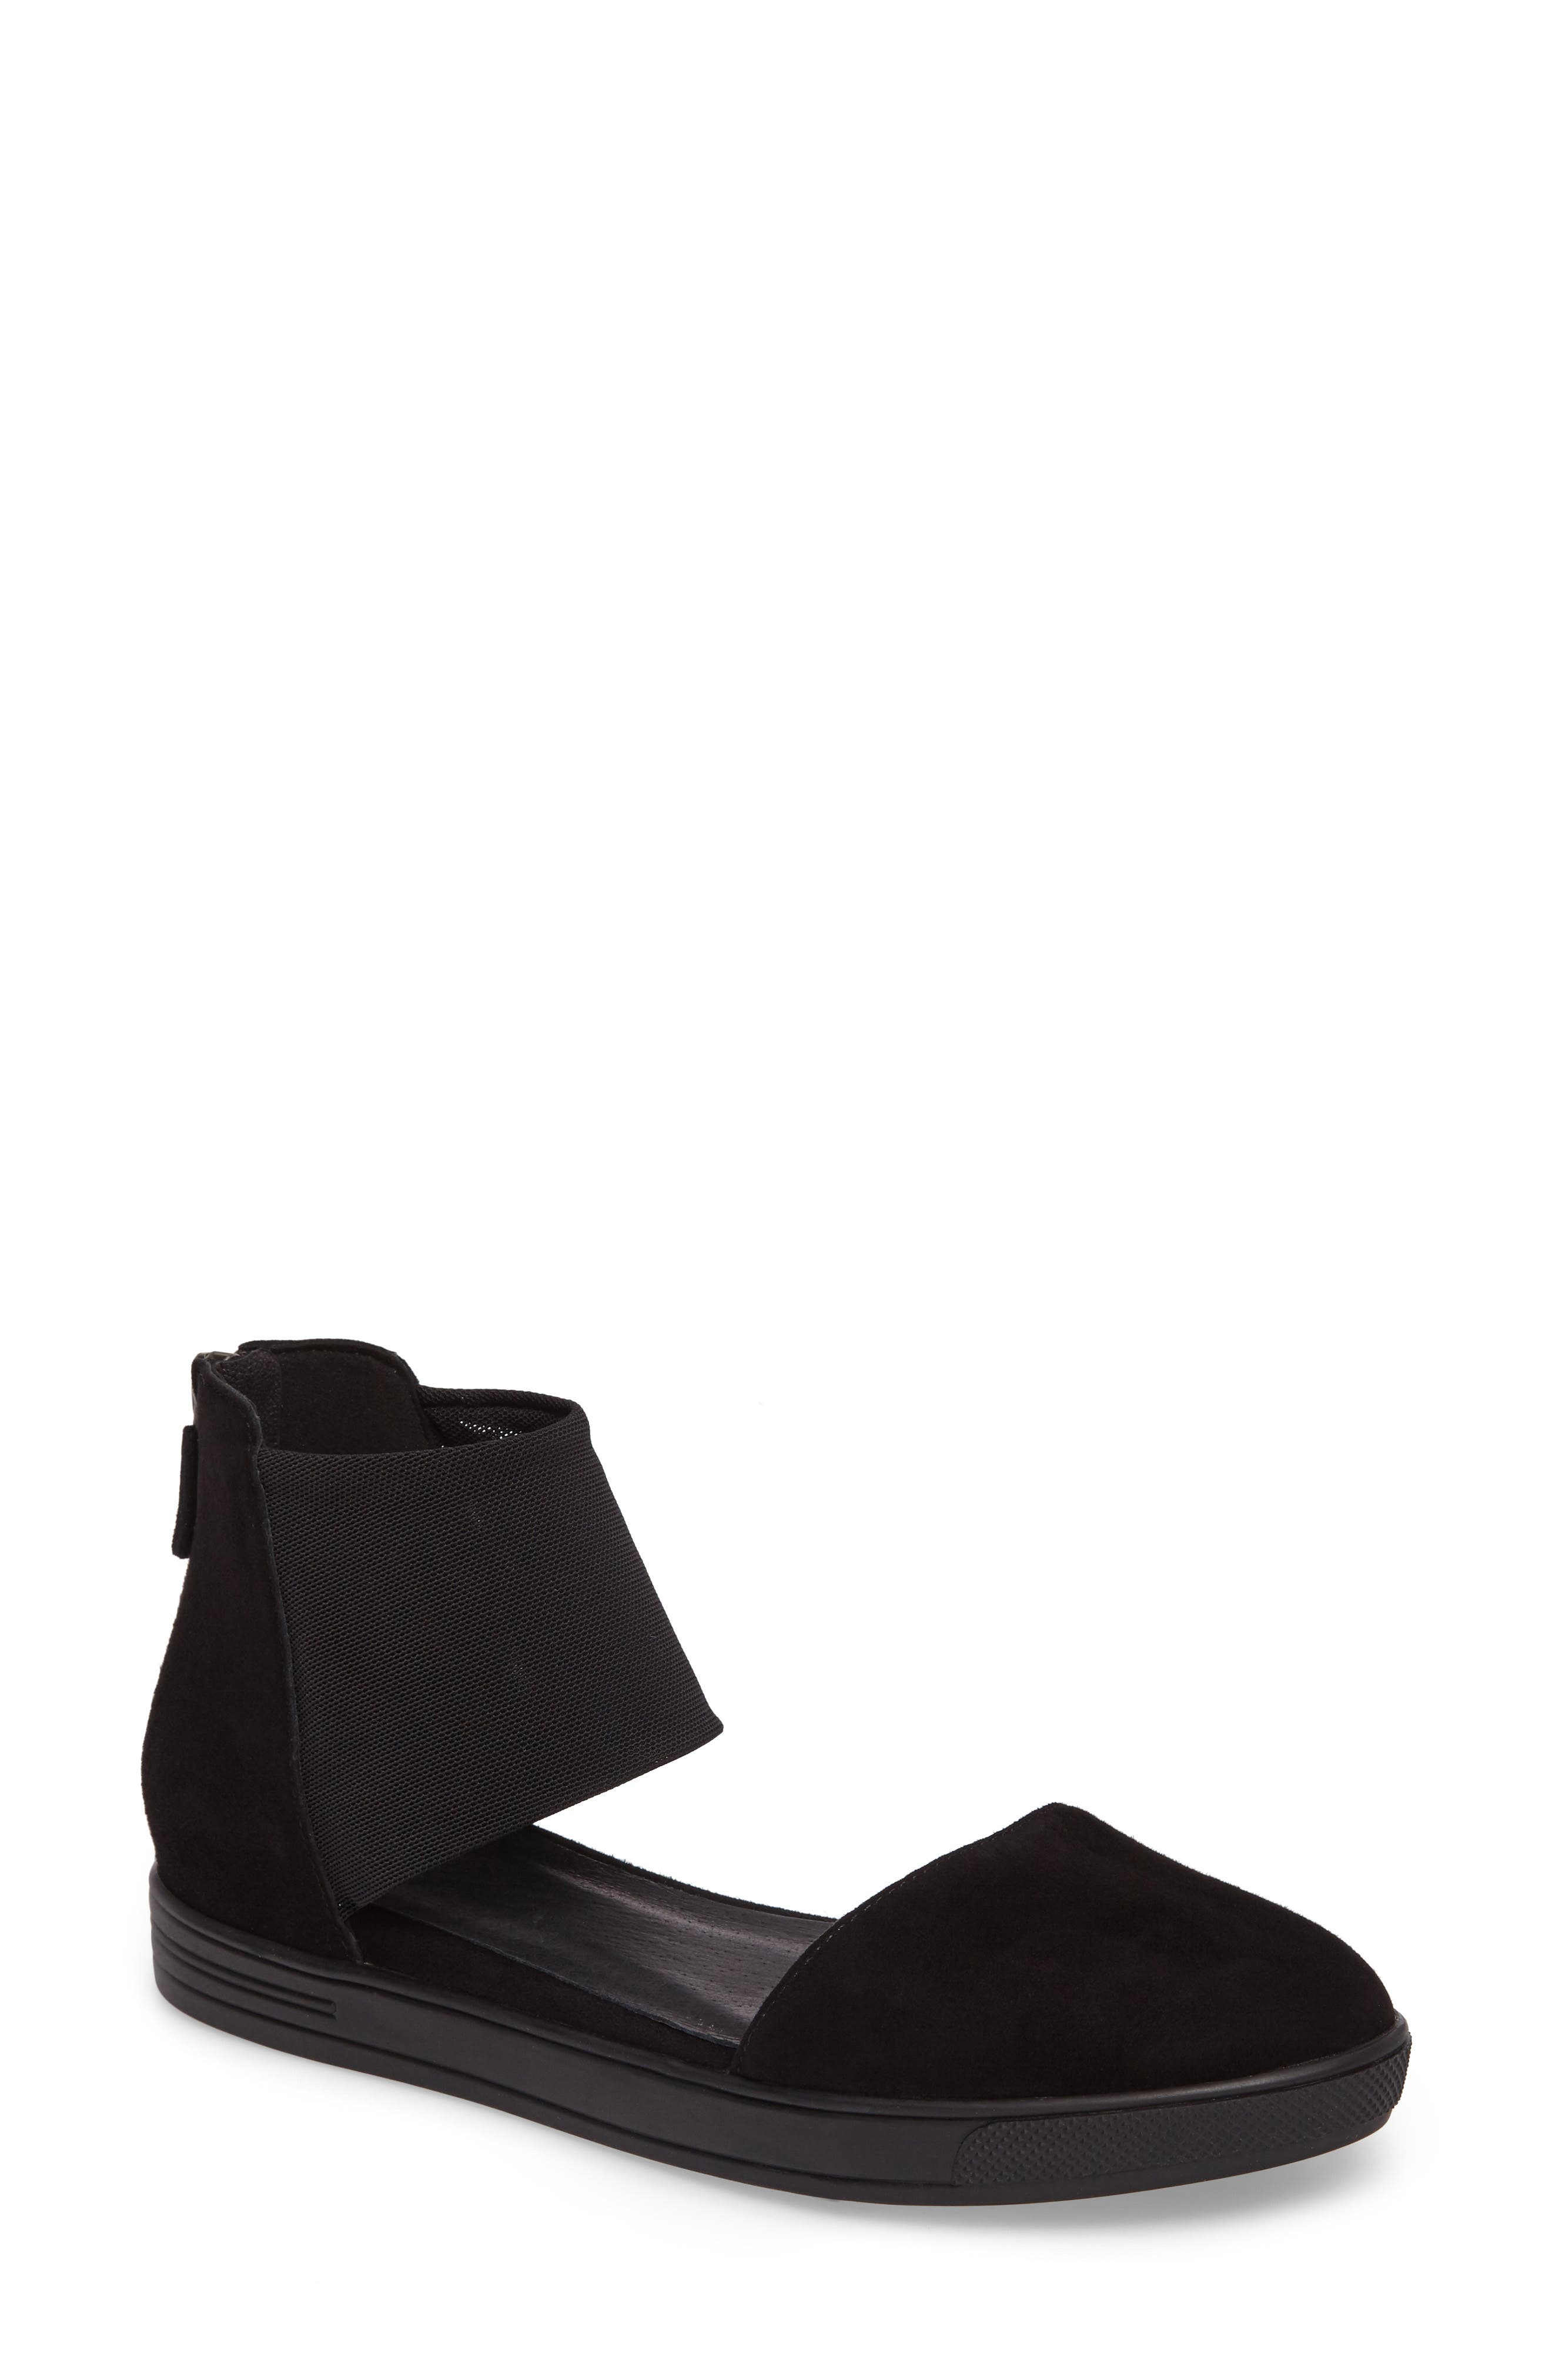 Powell Ankle Cuff Sandal,                             Main thumbnail 1, color,                             001